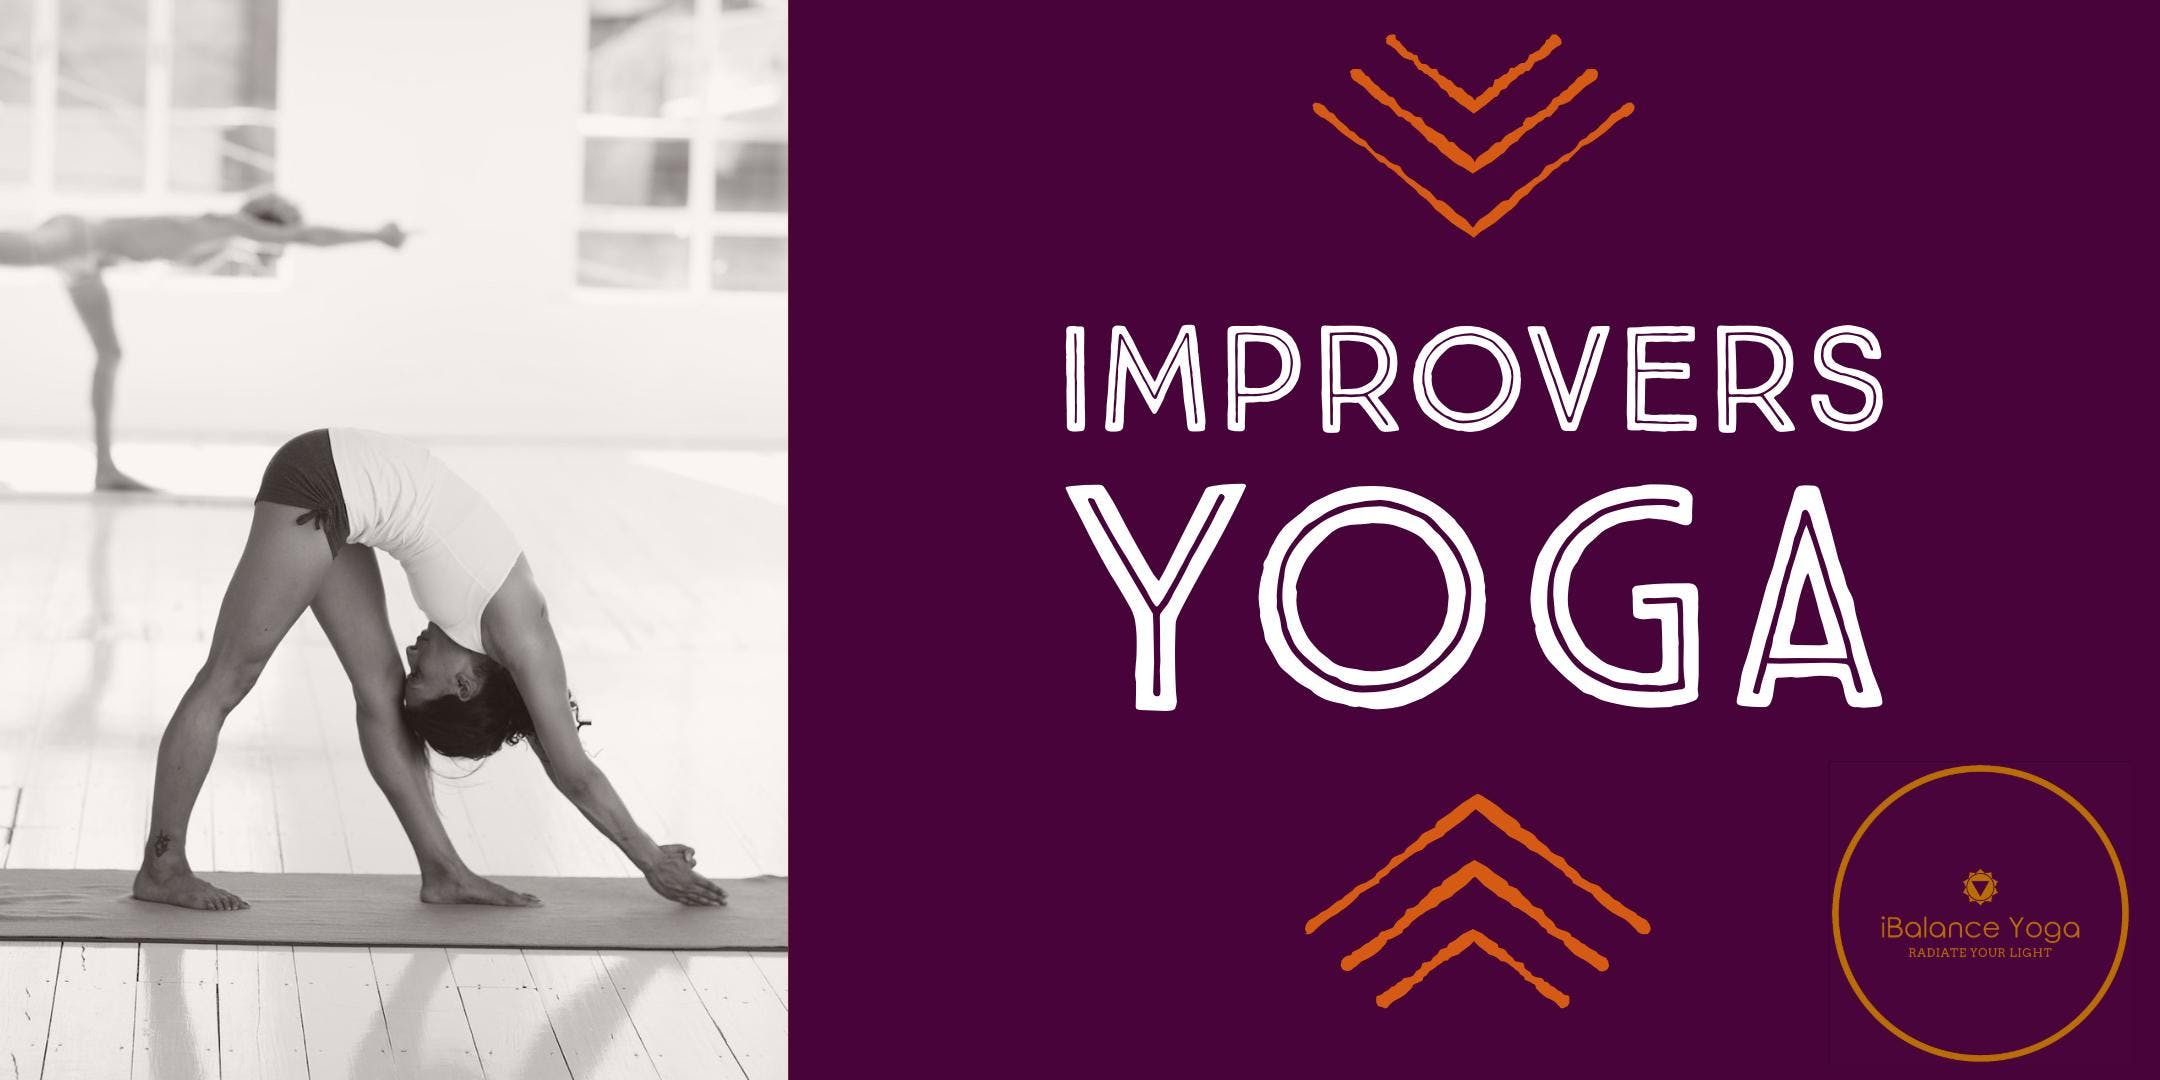 Improvers Yoga